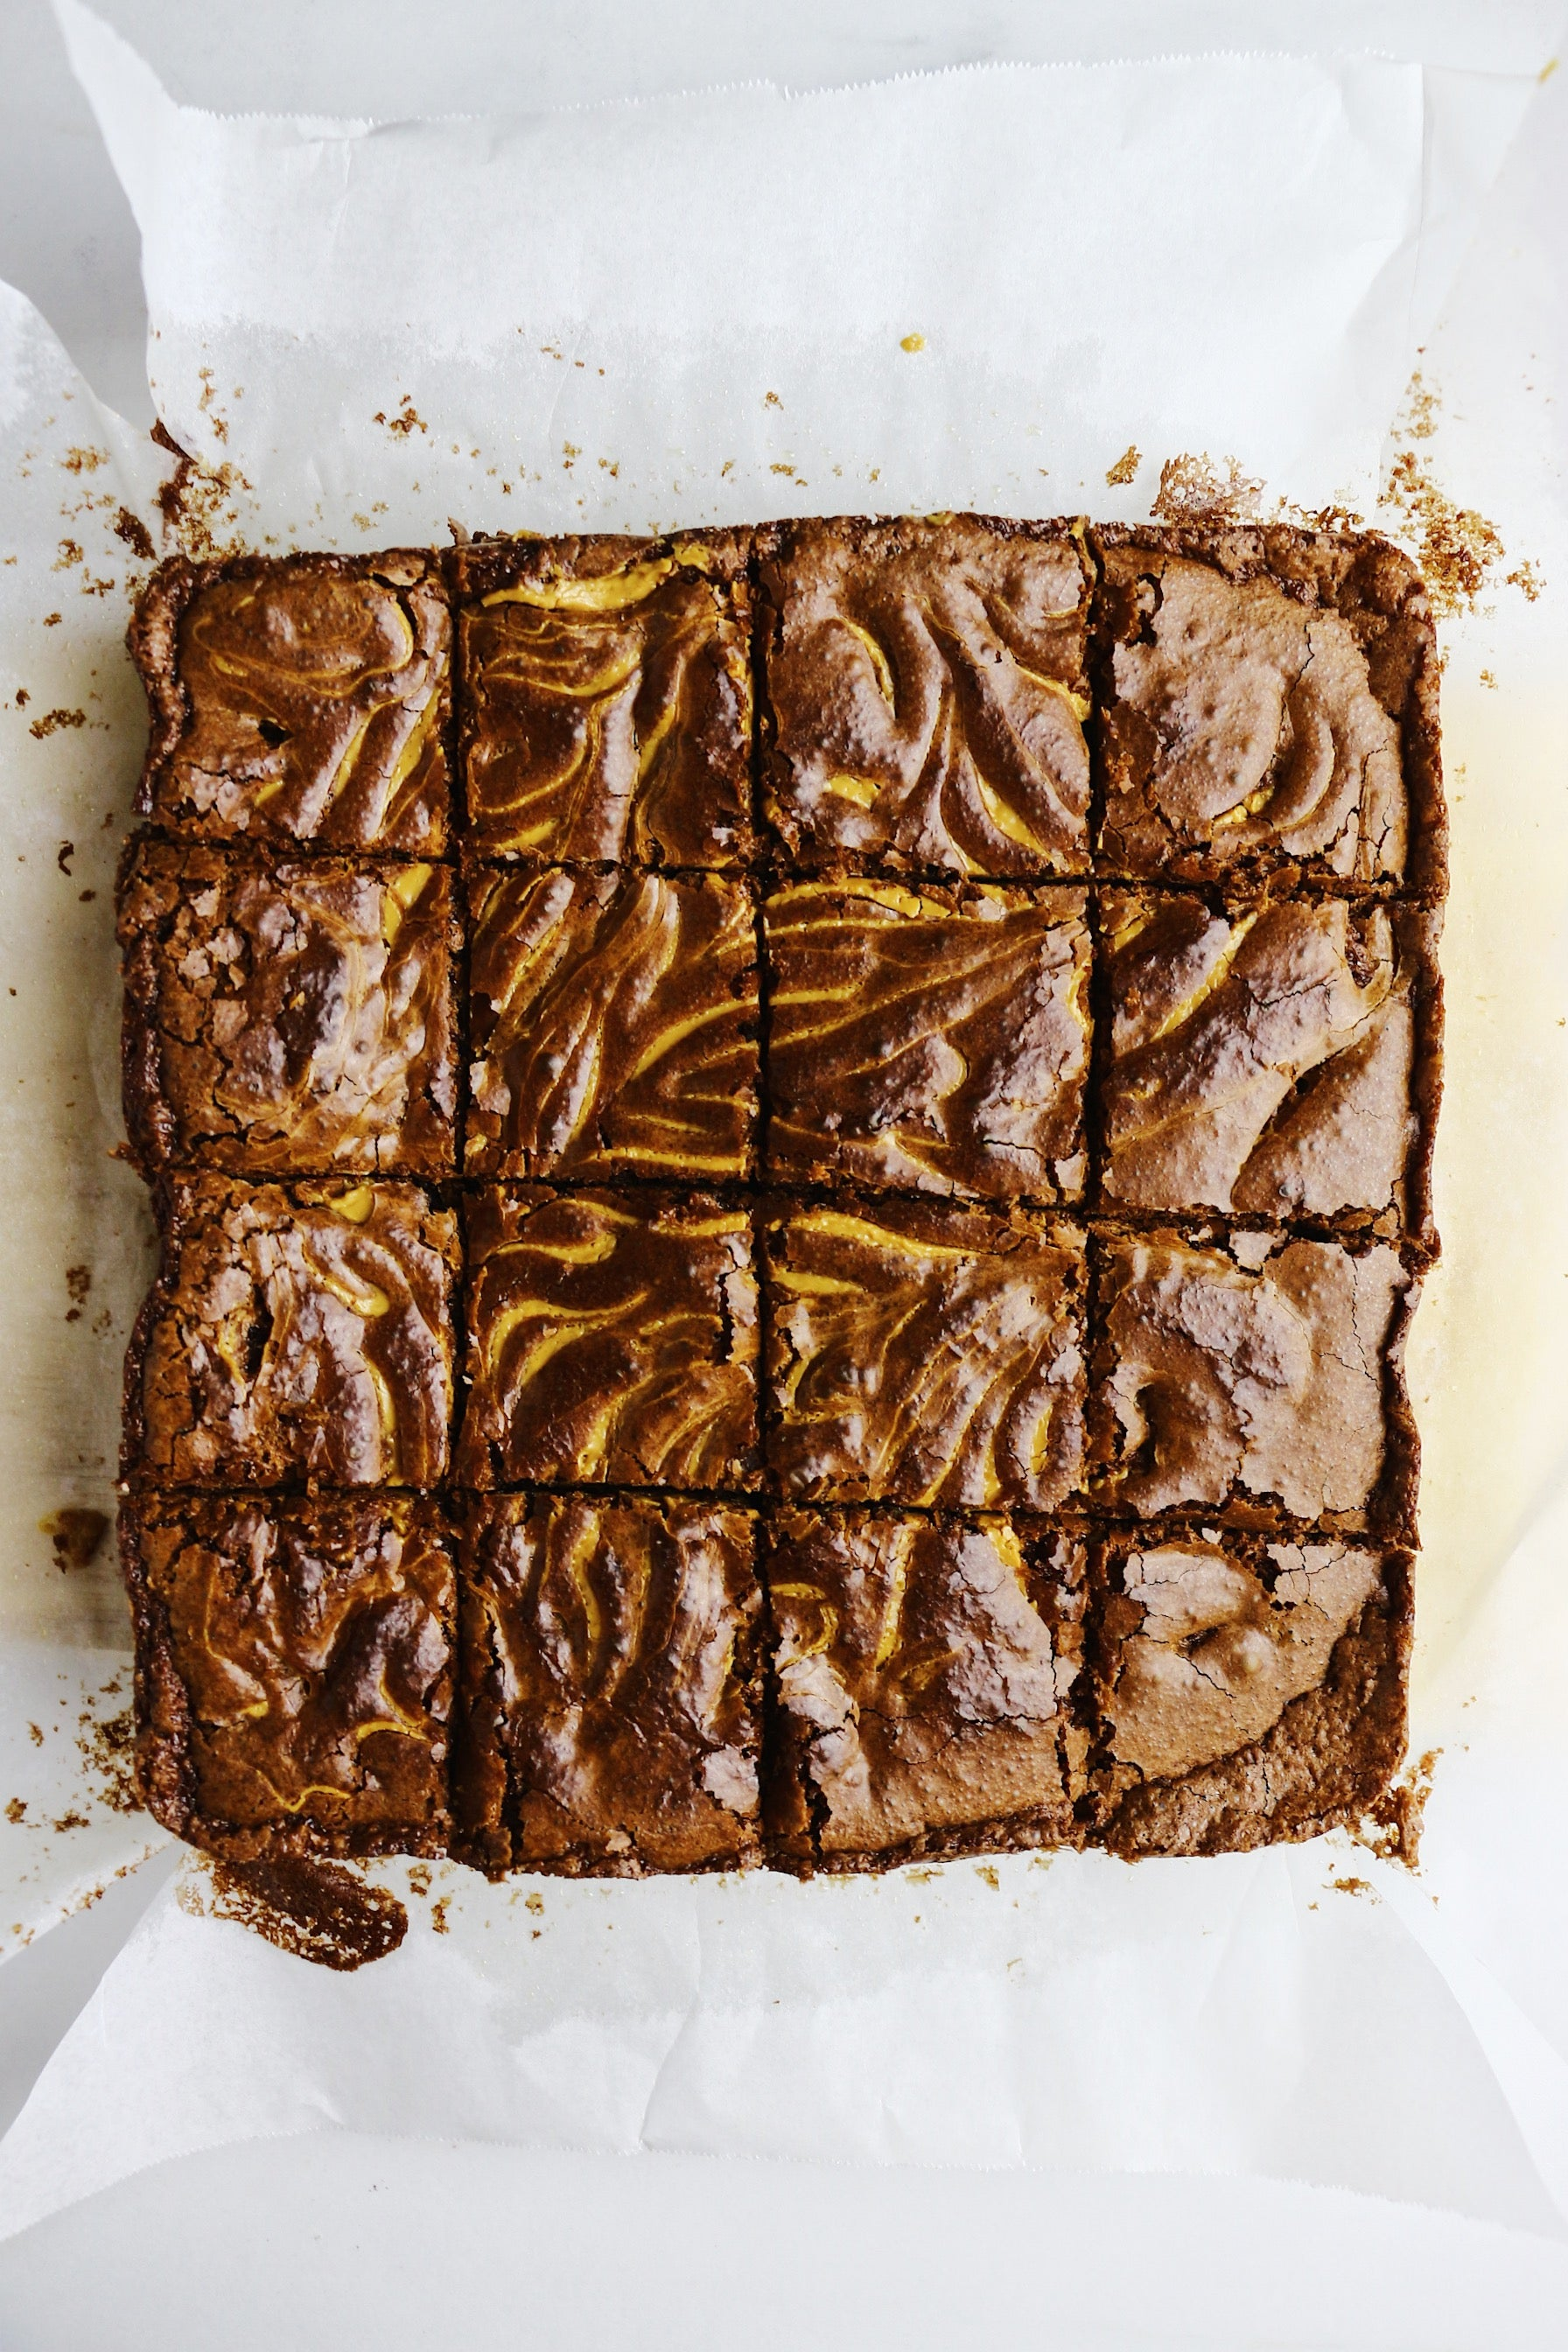 Peanut Butter Swirled Fudge Brownies